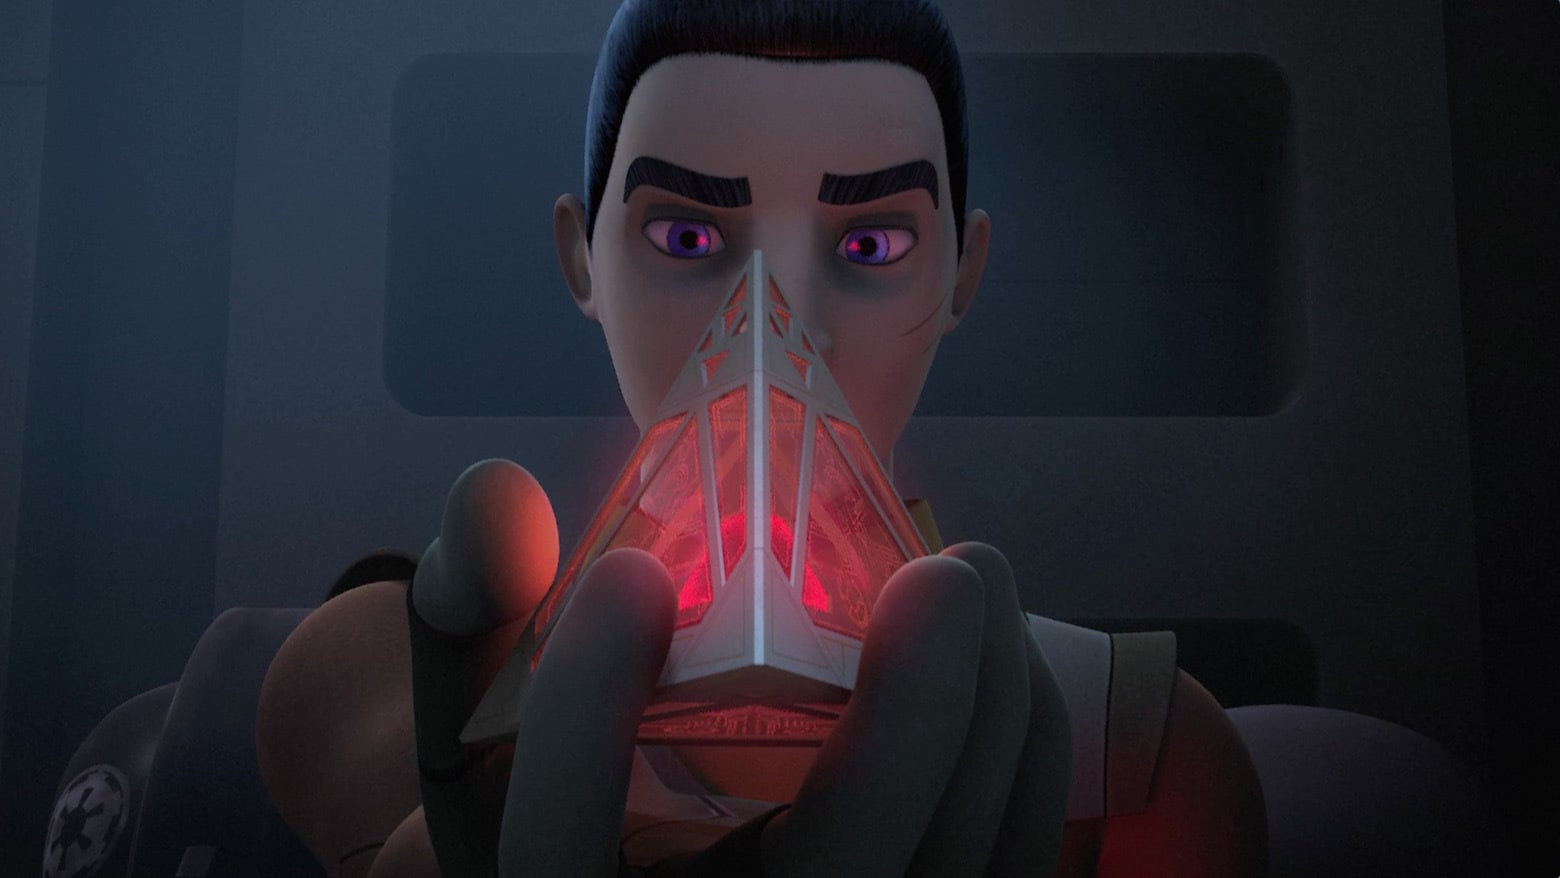 Star Wars Rebels Season Three Trailer